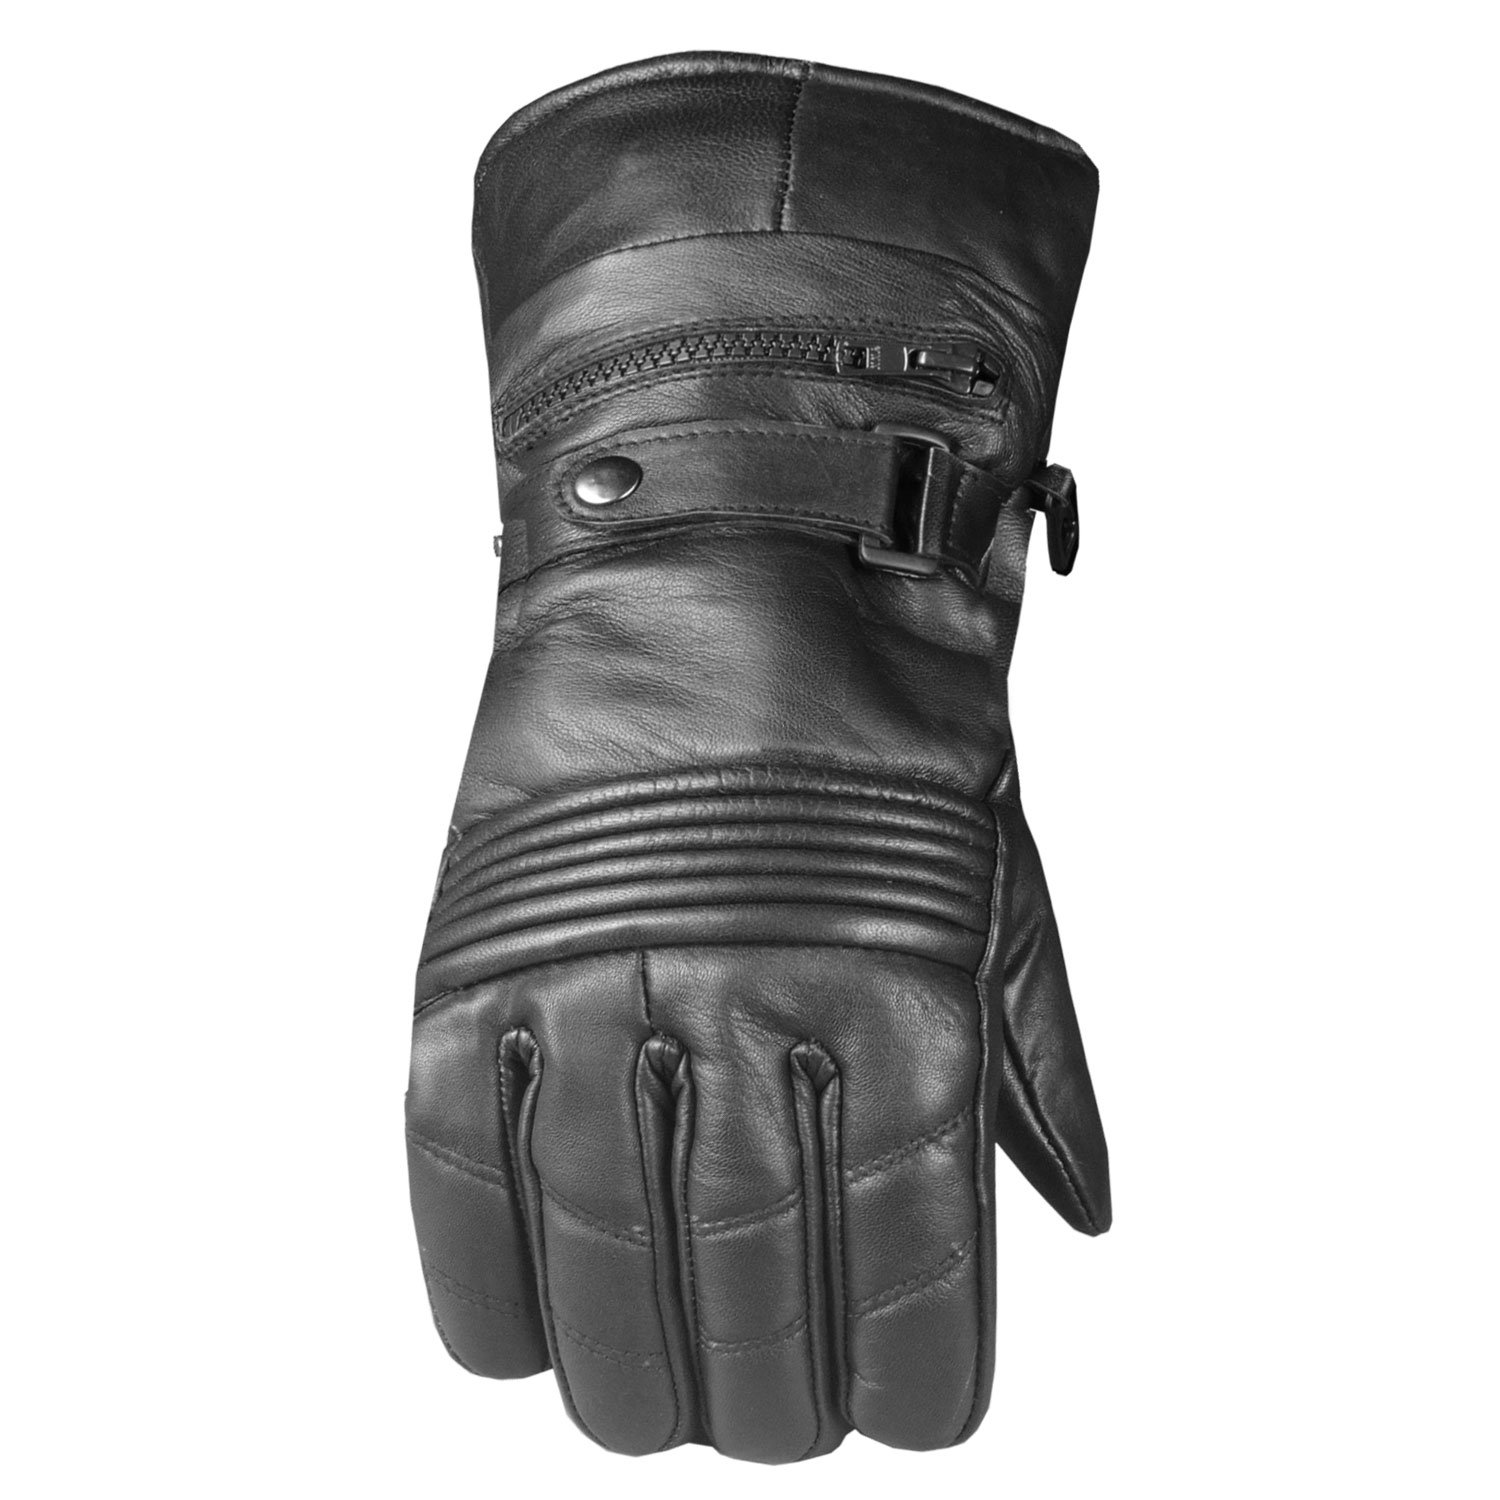 Men's Premium Leather Thinsulate Winter Waterproof Cover Motorcycle Gloves L Jackets 4 Bikes